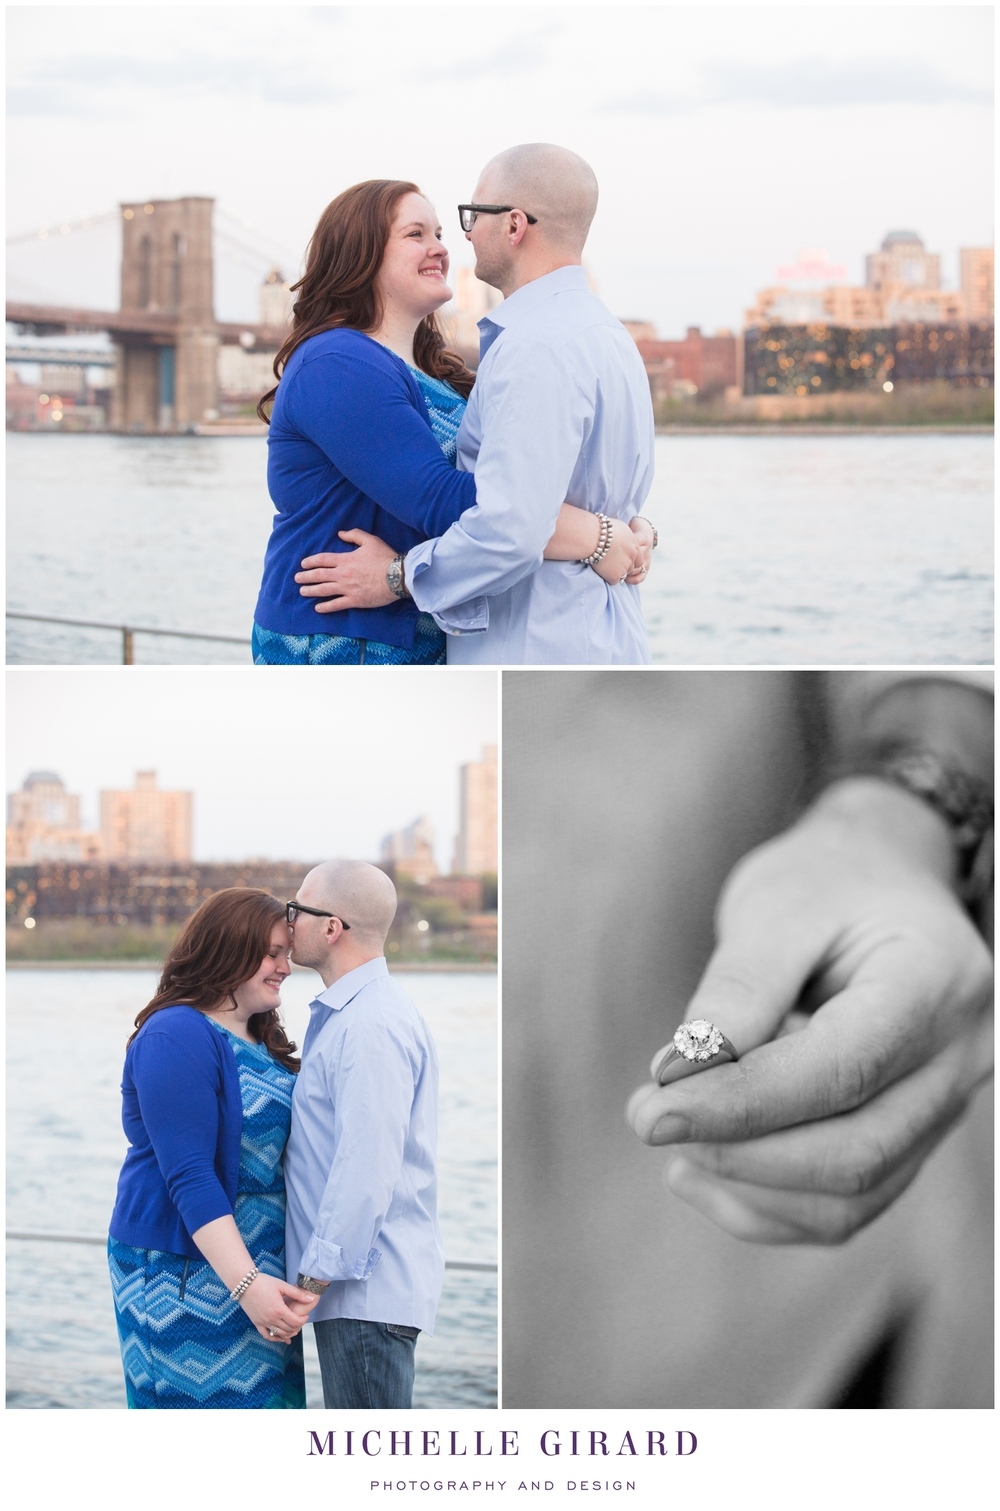 NewYorkCityEngagementSession_FinancialDistrict_MichelleGirardPhotography13.jpg